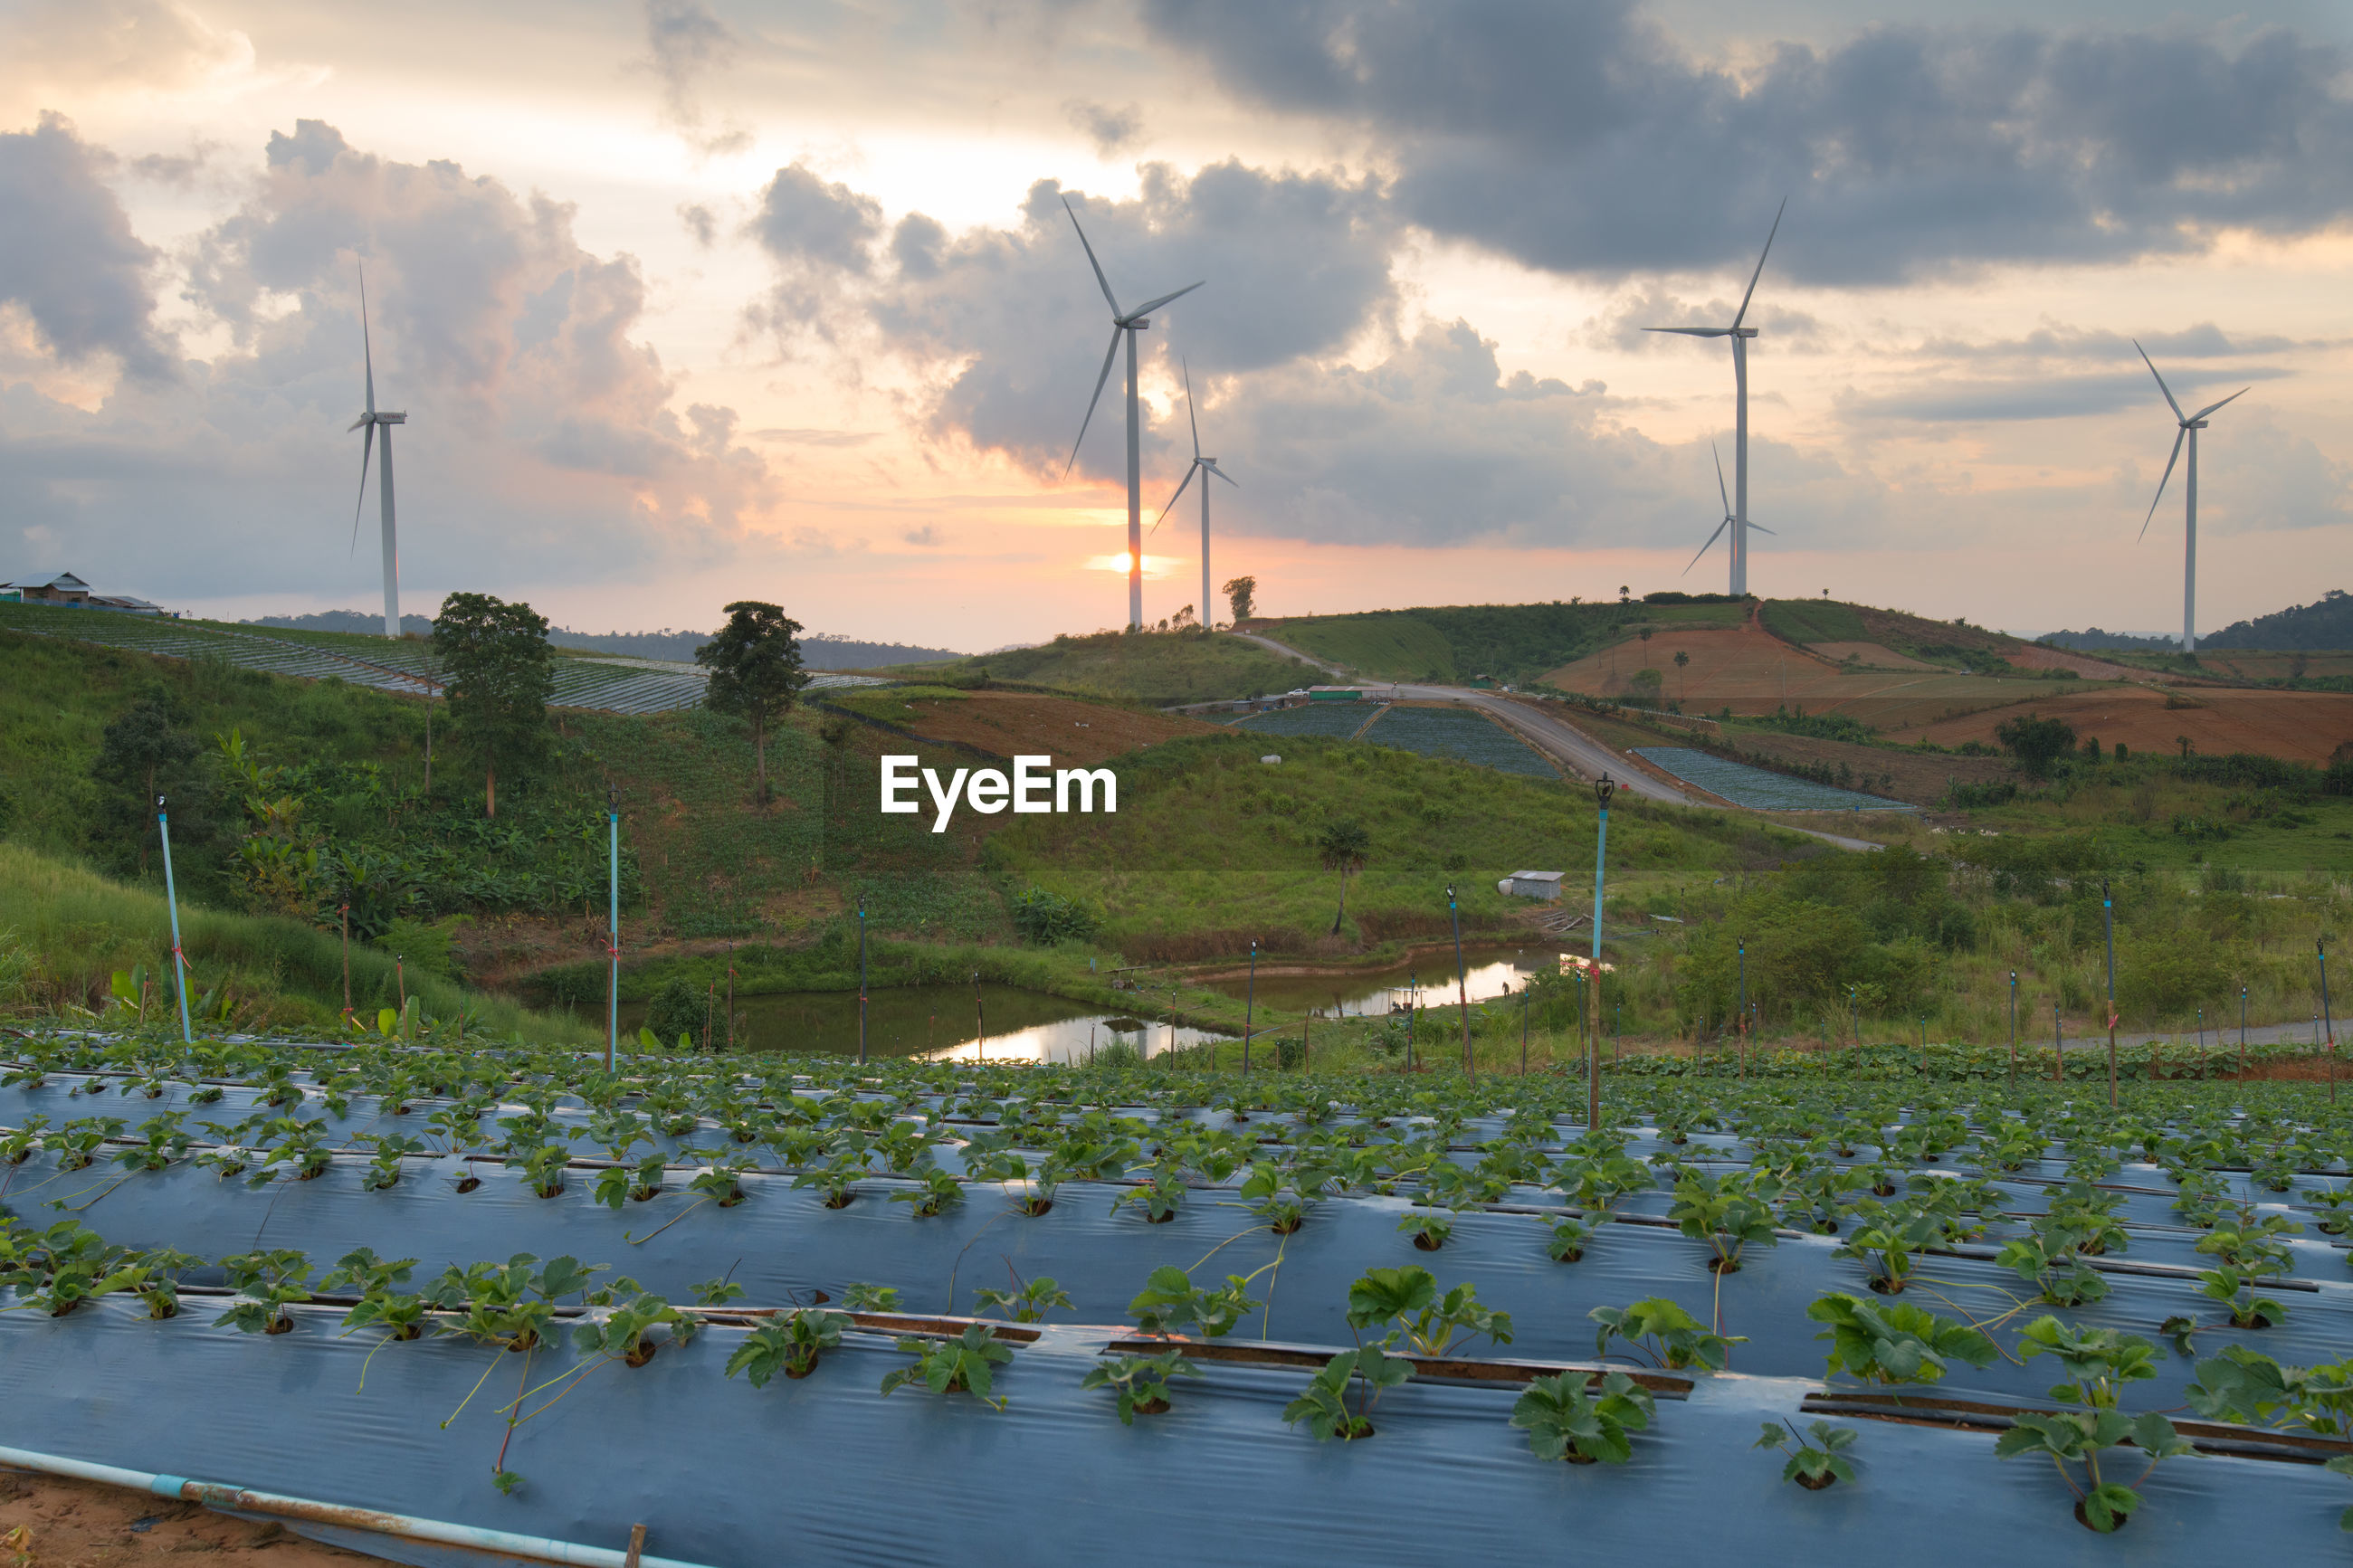 PANORAMIC VIEW OF WIND TURBINES IN FARM